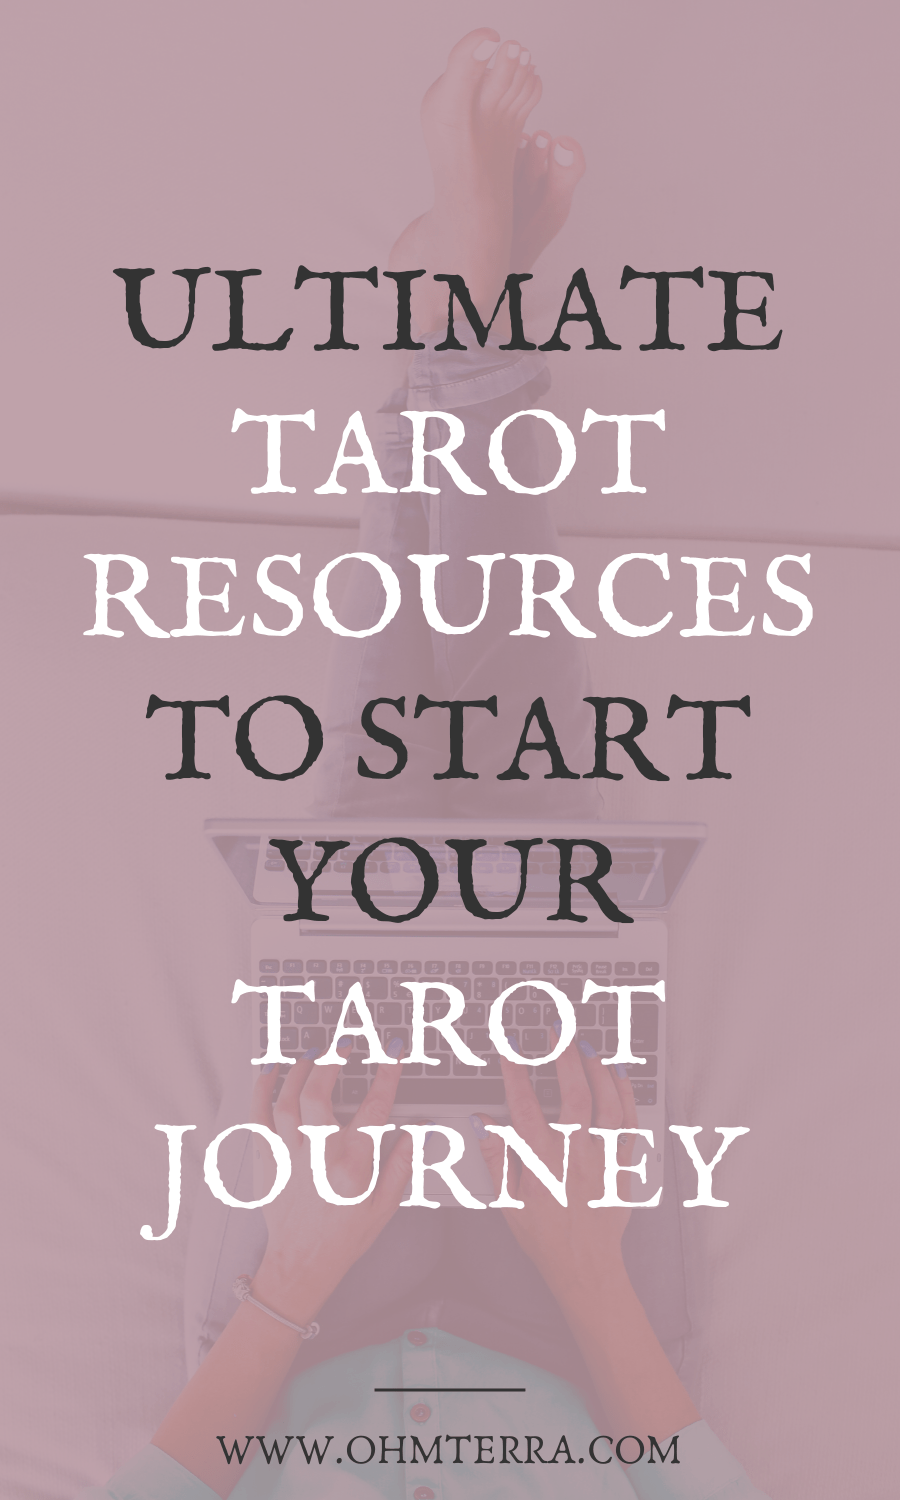 Resources to Learn Tarot